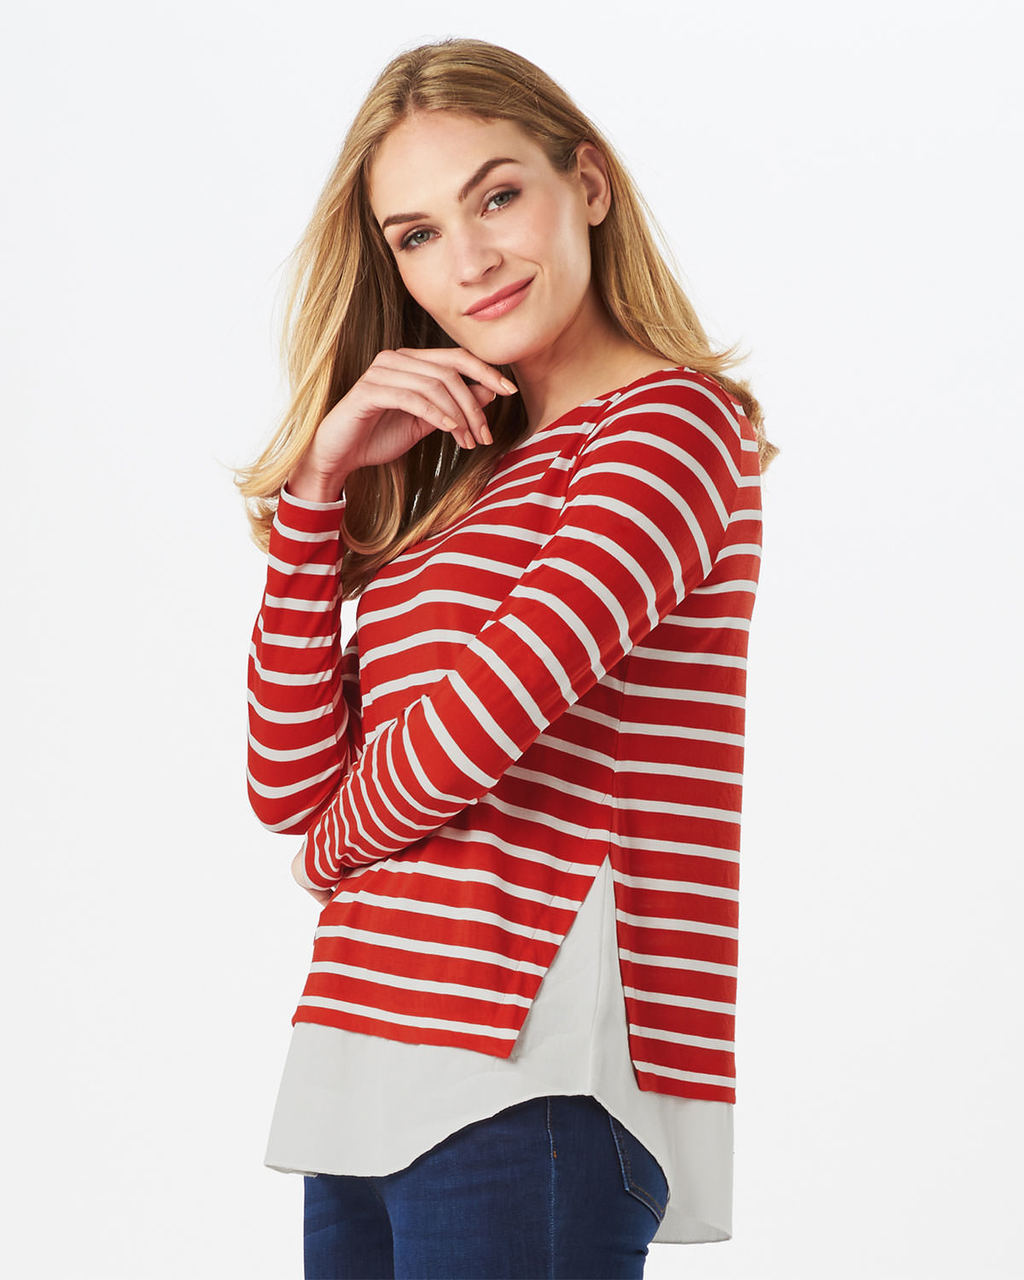 Wilton Stripe Top - neckline: round neck; pattern: horizontal stripes; secondary colour: white; predominant colour: terracotta; occasions: casual, creative work; length: standard; style: top; fibres: cotton - stretch; fit: body skimming; sleeve length: long sleeve; sleeve style: standard; pattern type: fabric; texture group: jersey - stretchy/drapey; pattern size: big & busy (top); season: s/s 2016; wardrobe: highlight